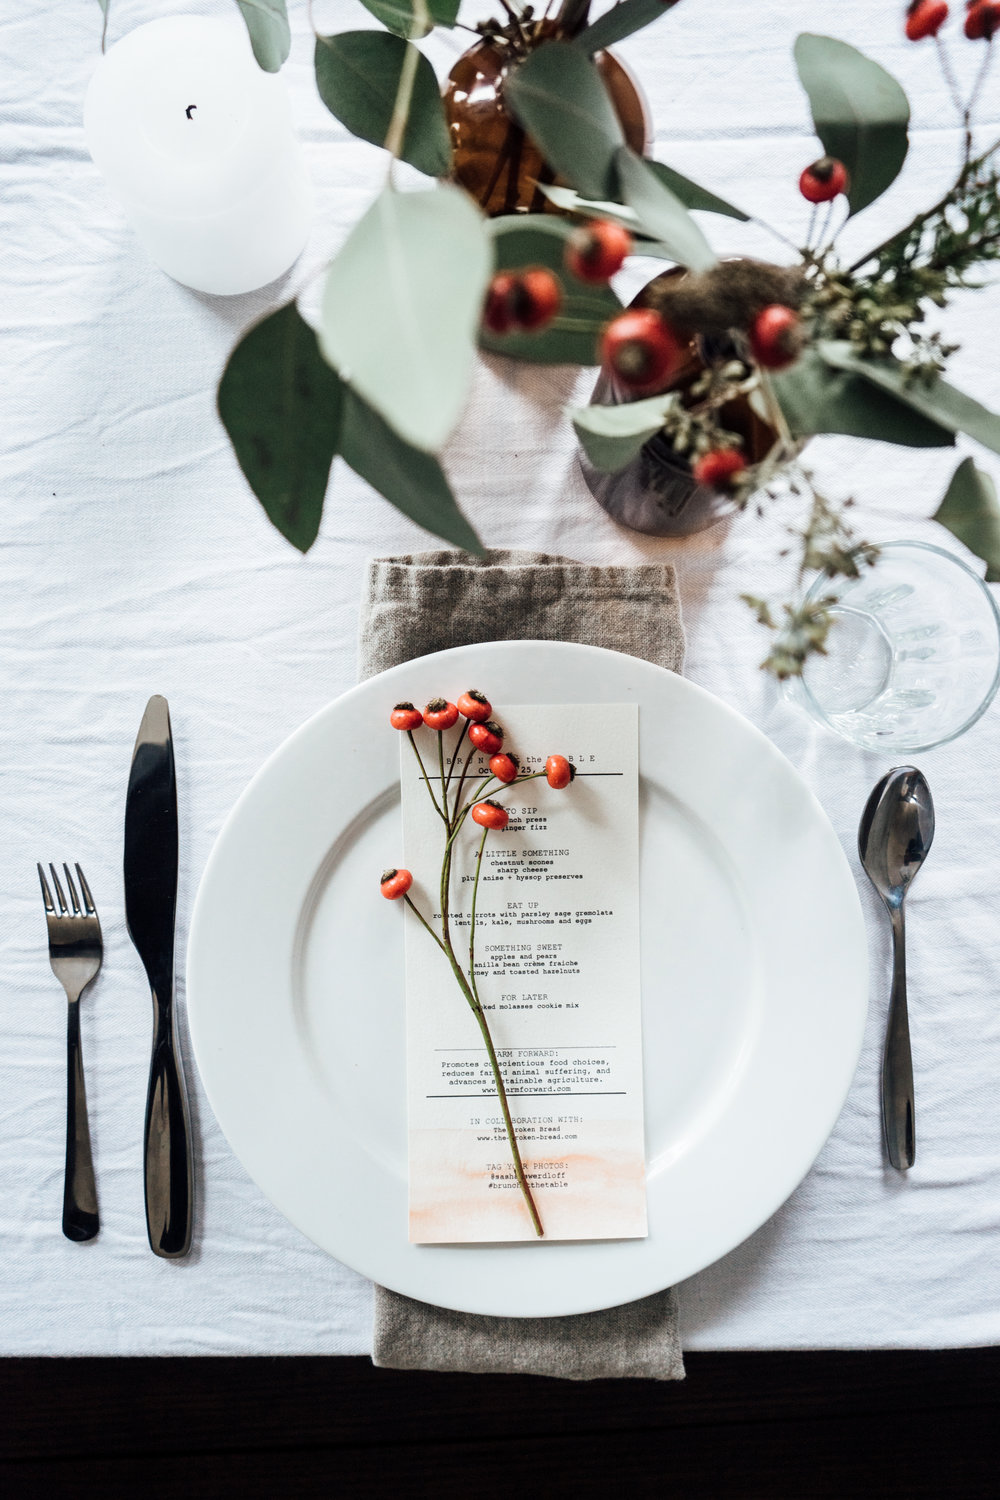 ROSE & IVY Journal Festive Plates to Create a Magical Holiday Table Setting